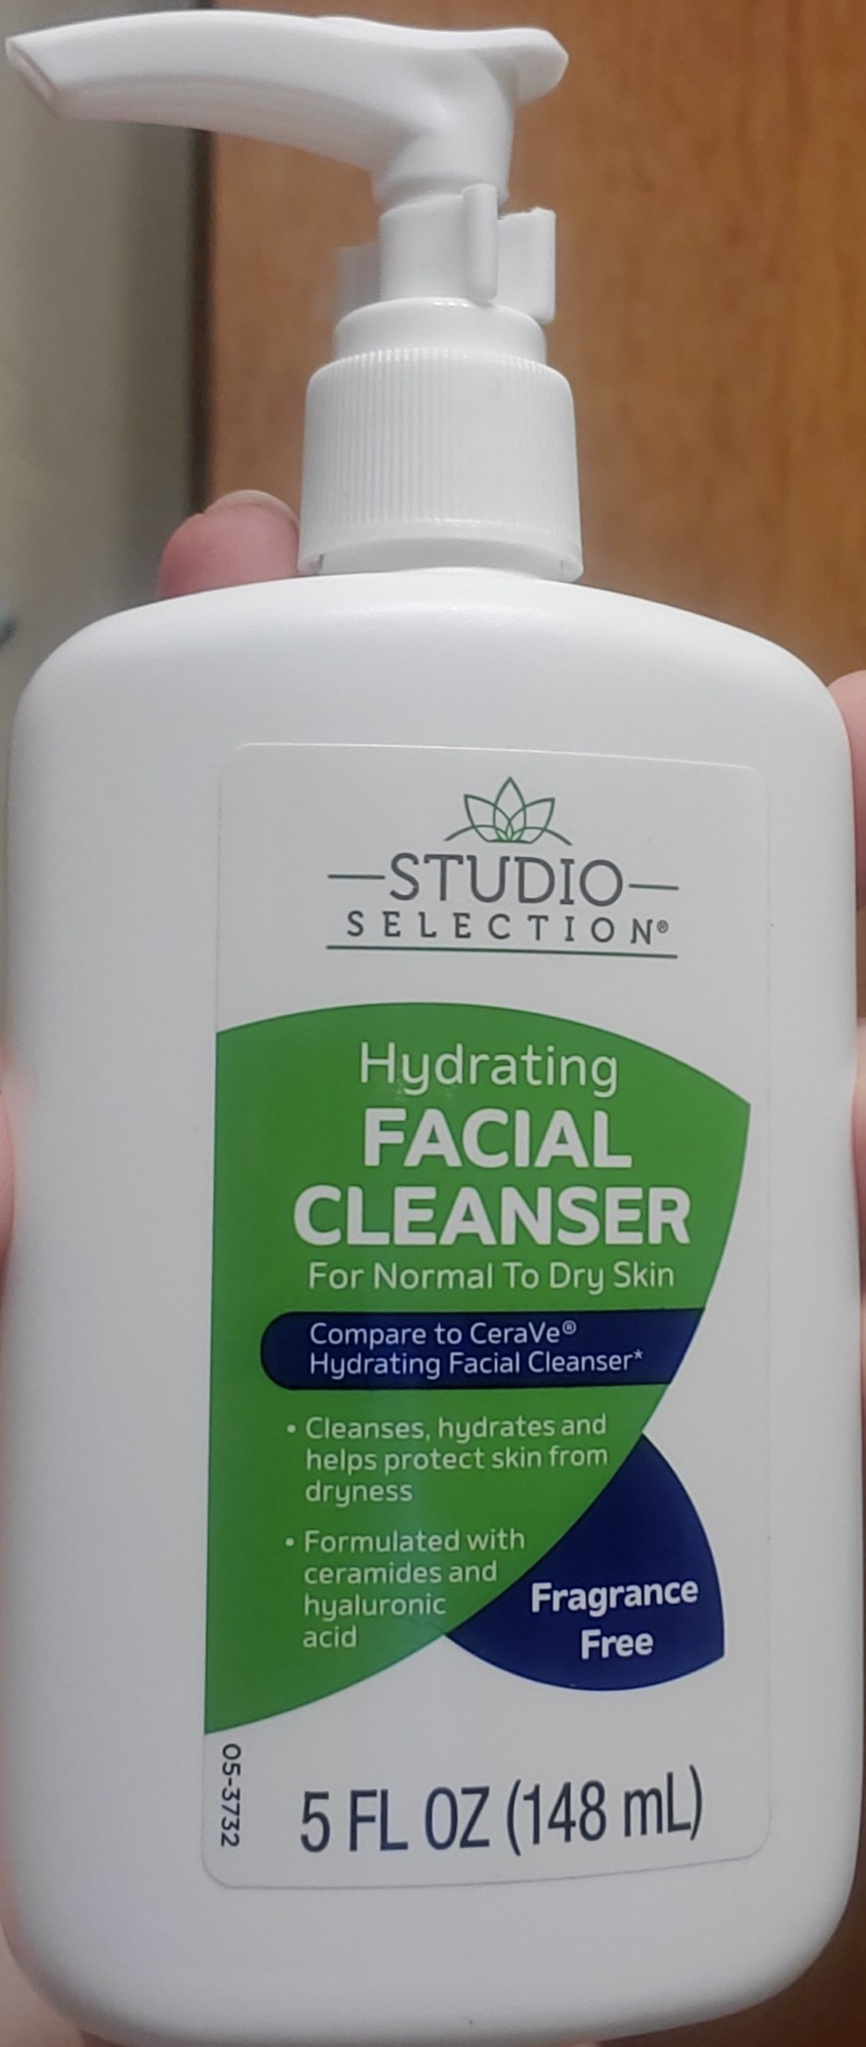 Studio Selection Hydrating Facial Cleanser For Normal To Dry Skin